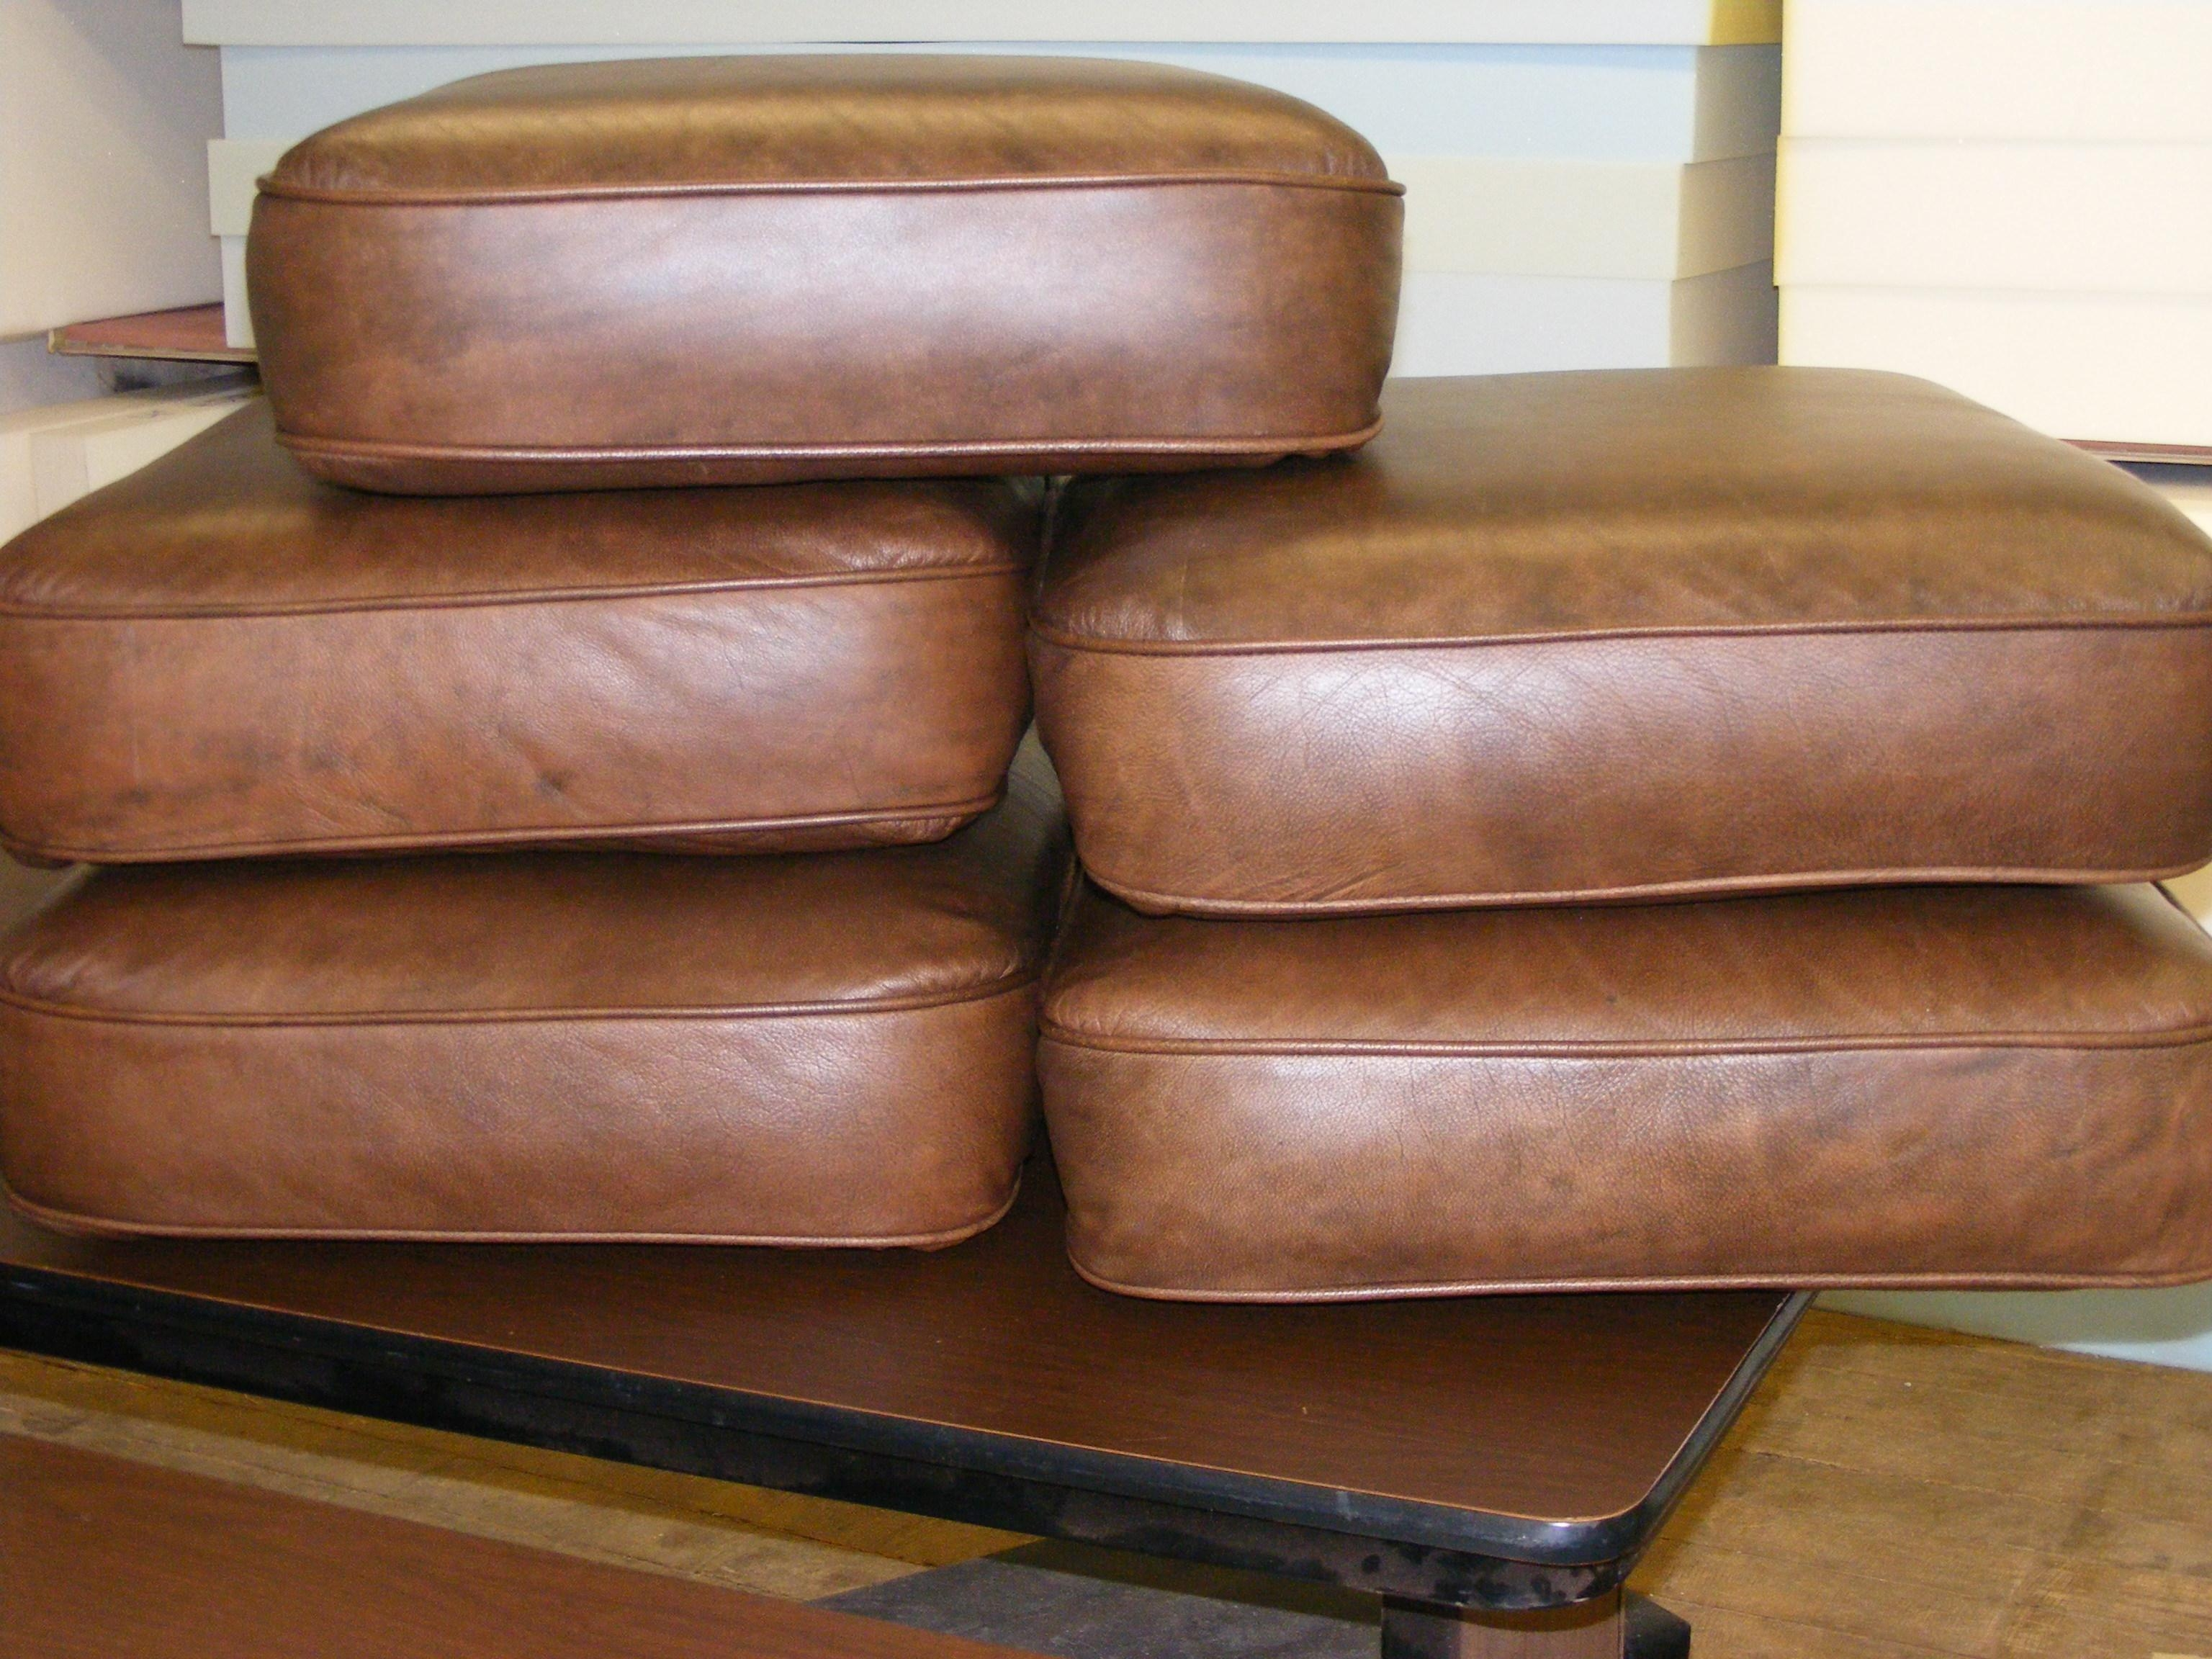 New Replacement Cores For Leather Furniture Cushions – Firm Cushions Inside Sofa Cushions (Image 14 of 21)